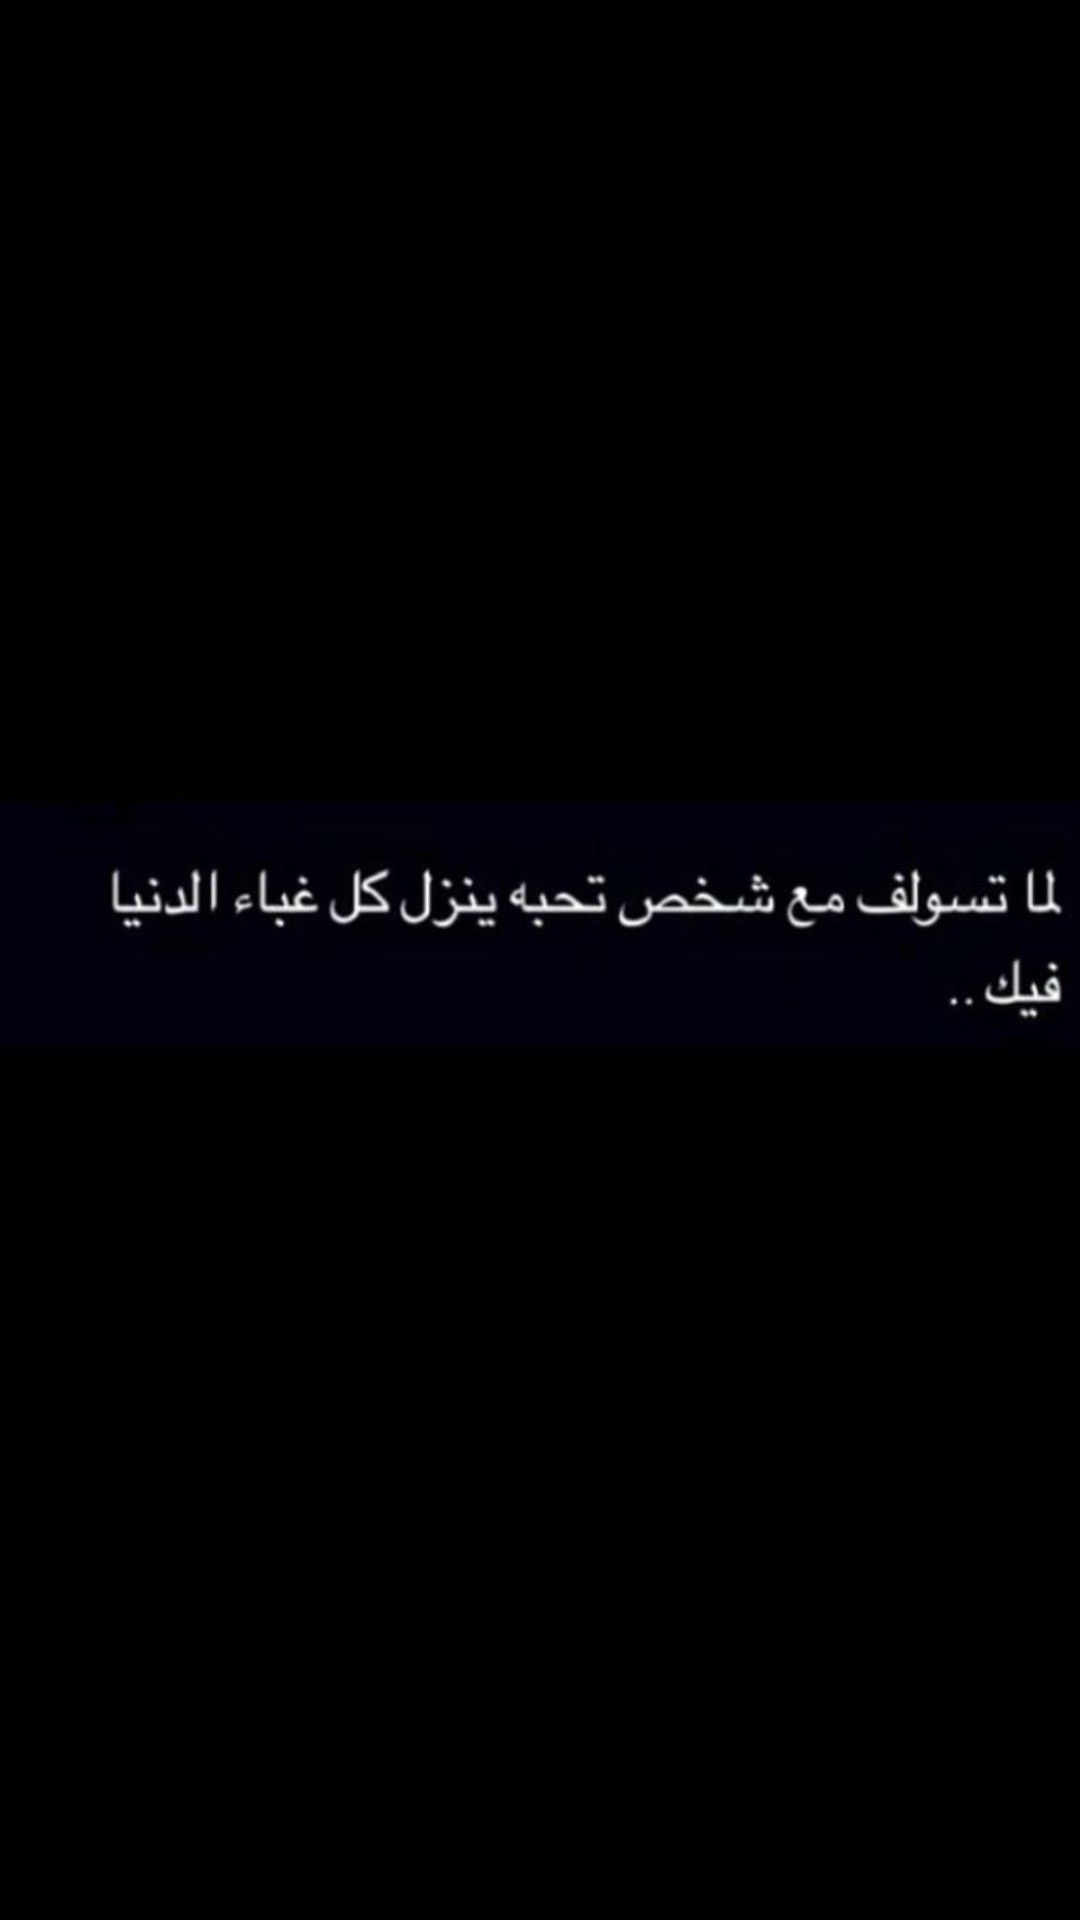 Pin By Olaa M Al Taie On استهبال Funny Arabic Quotes Jokes Quotes Arabic Funny